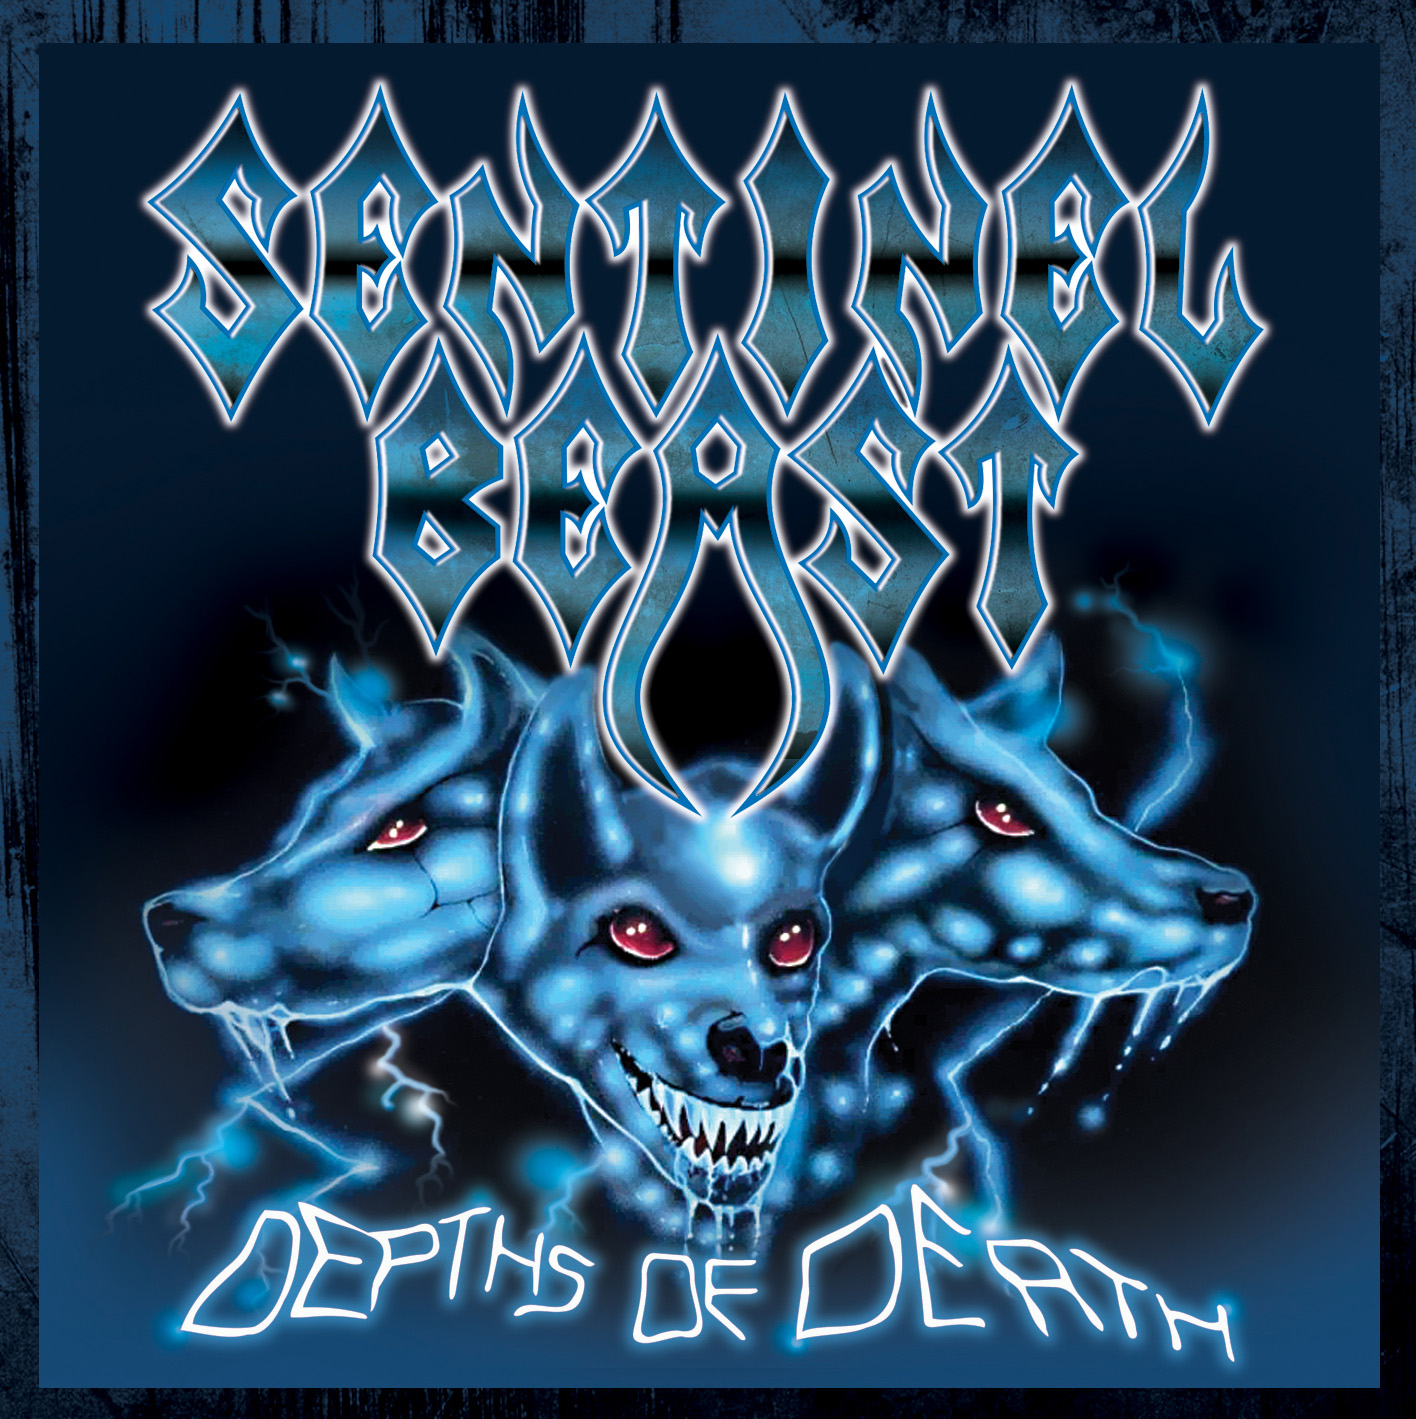 Sentinel Beast - Depths of Death Artwork